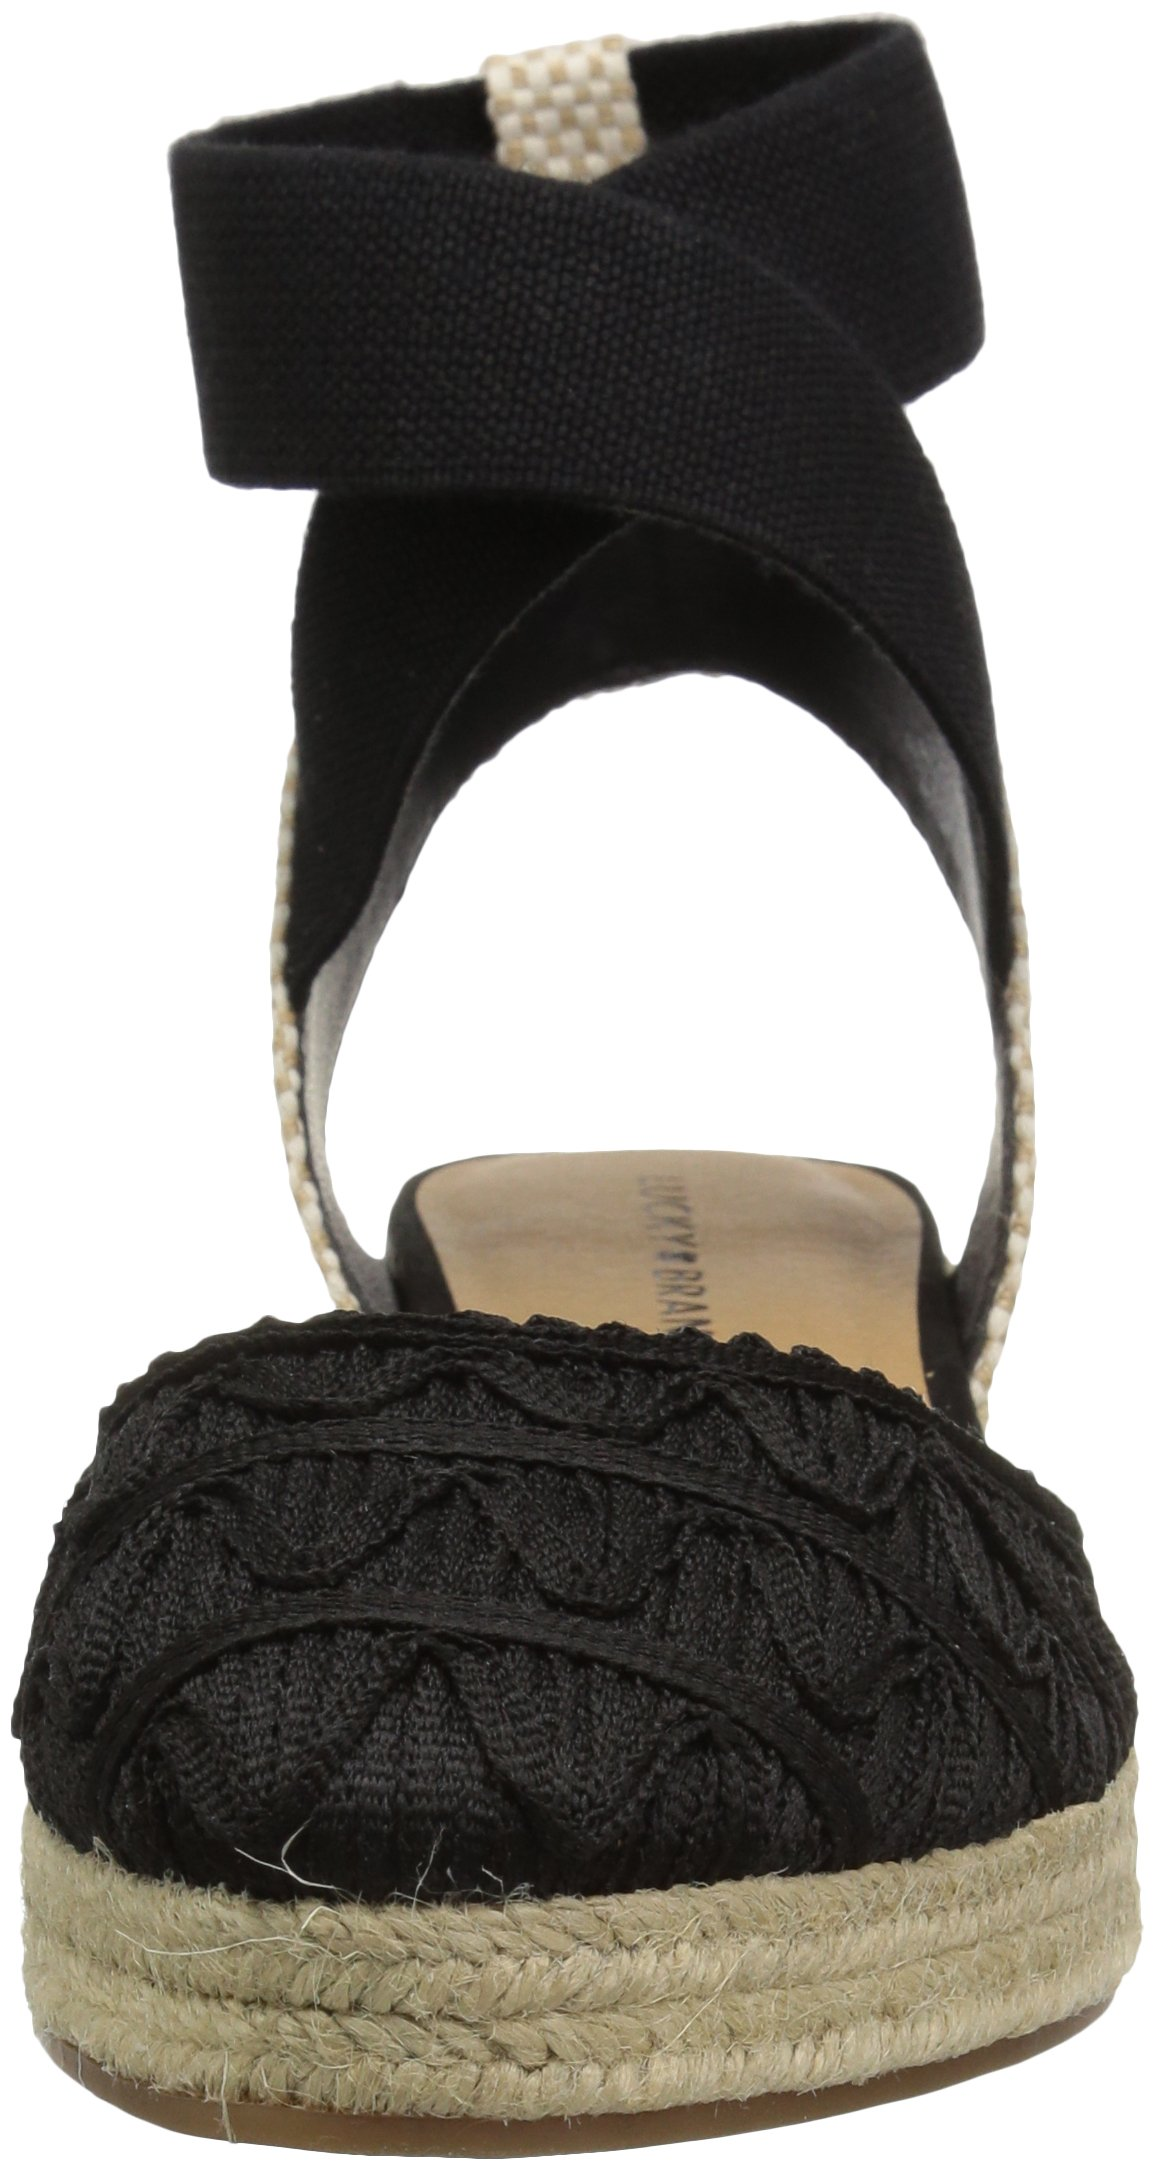 Lucky Brand Women's Luvinia Pump, Black, 7 M US by Lucky Brand (Image #4)